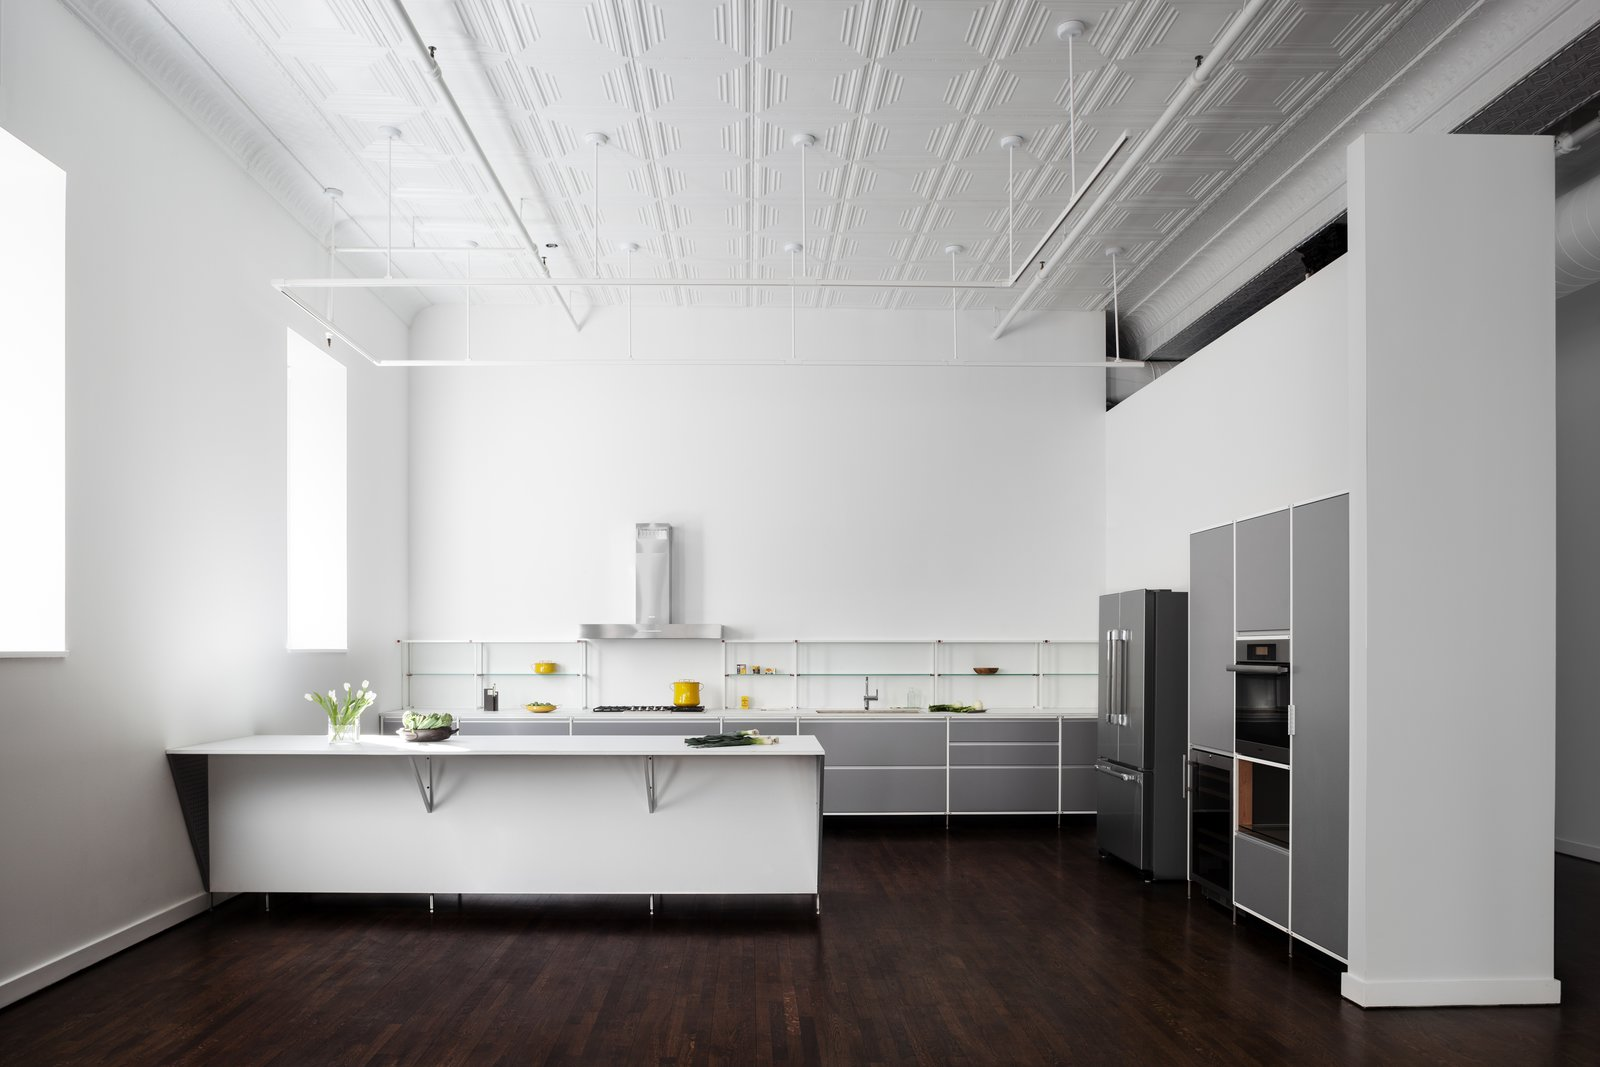 Kitchen, Refrigerator, Cooktops, Range Hood, Dark Hardwood Floor, and Ceiling Lighting We replaced the existing undersized kitchen with a new open plan that is more appropriate to the scale of the loft. Developed with manufacturer Valcucine, the light and industrial feel is in keeping with this unconventional domestic setting.  Broome Street Loft by Verona Carpenter Architects